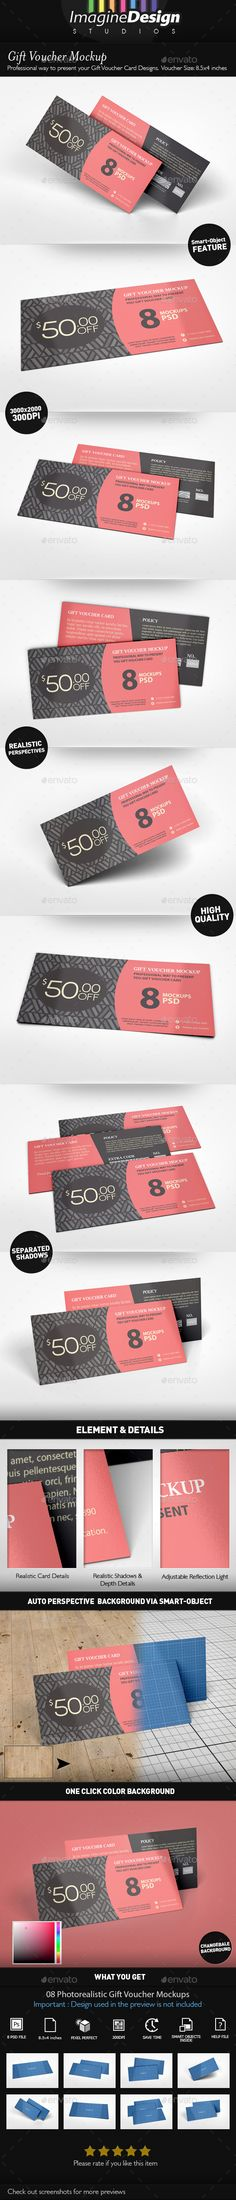 Gift Voucher Mockup — Photoshop PSD #promotional #discount coupon • Available here → https://graphicriver.net/item/gift-voucher-mockup/16130812?ref=pxcr